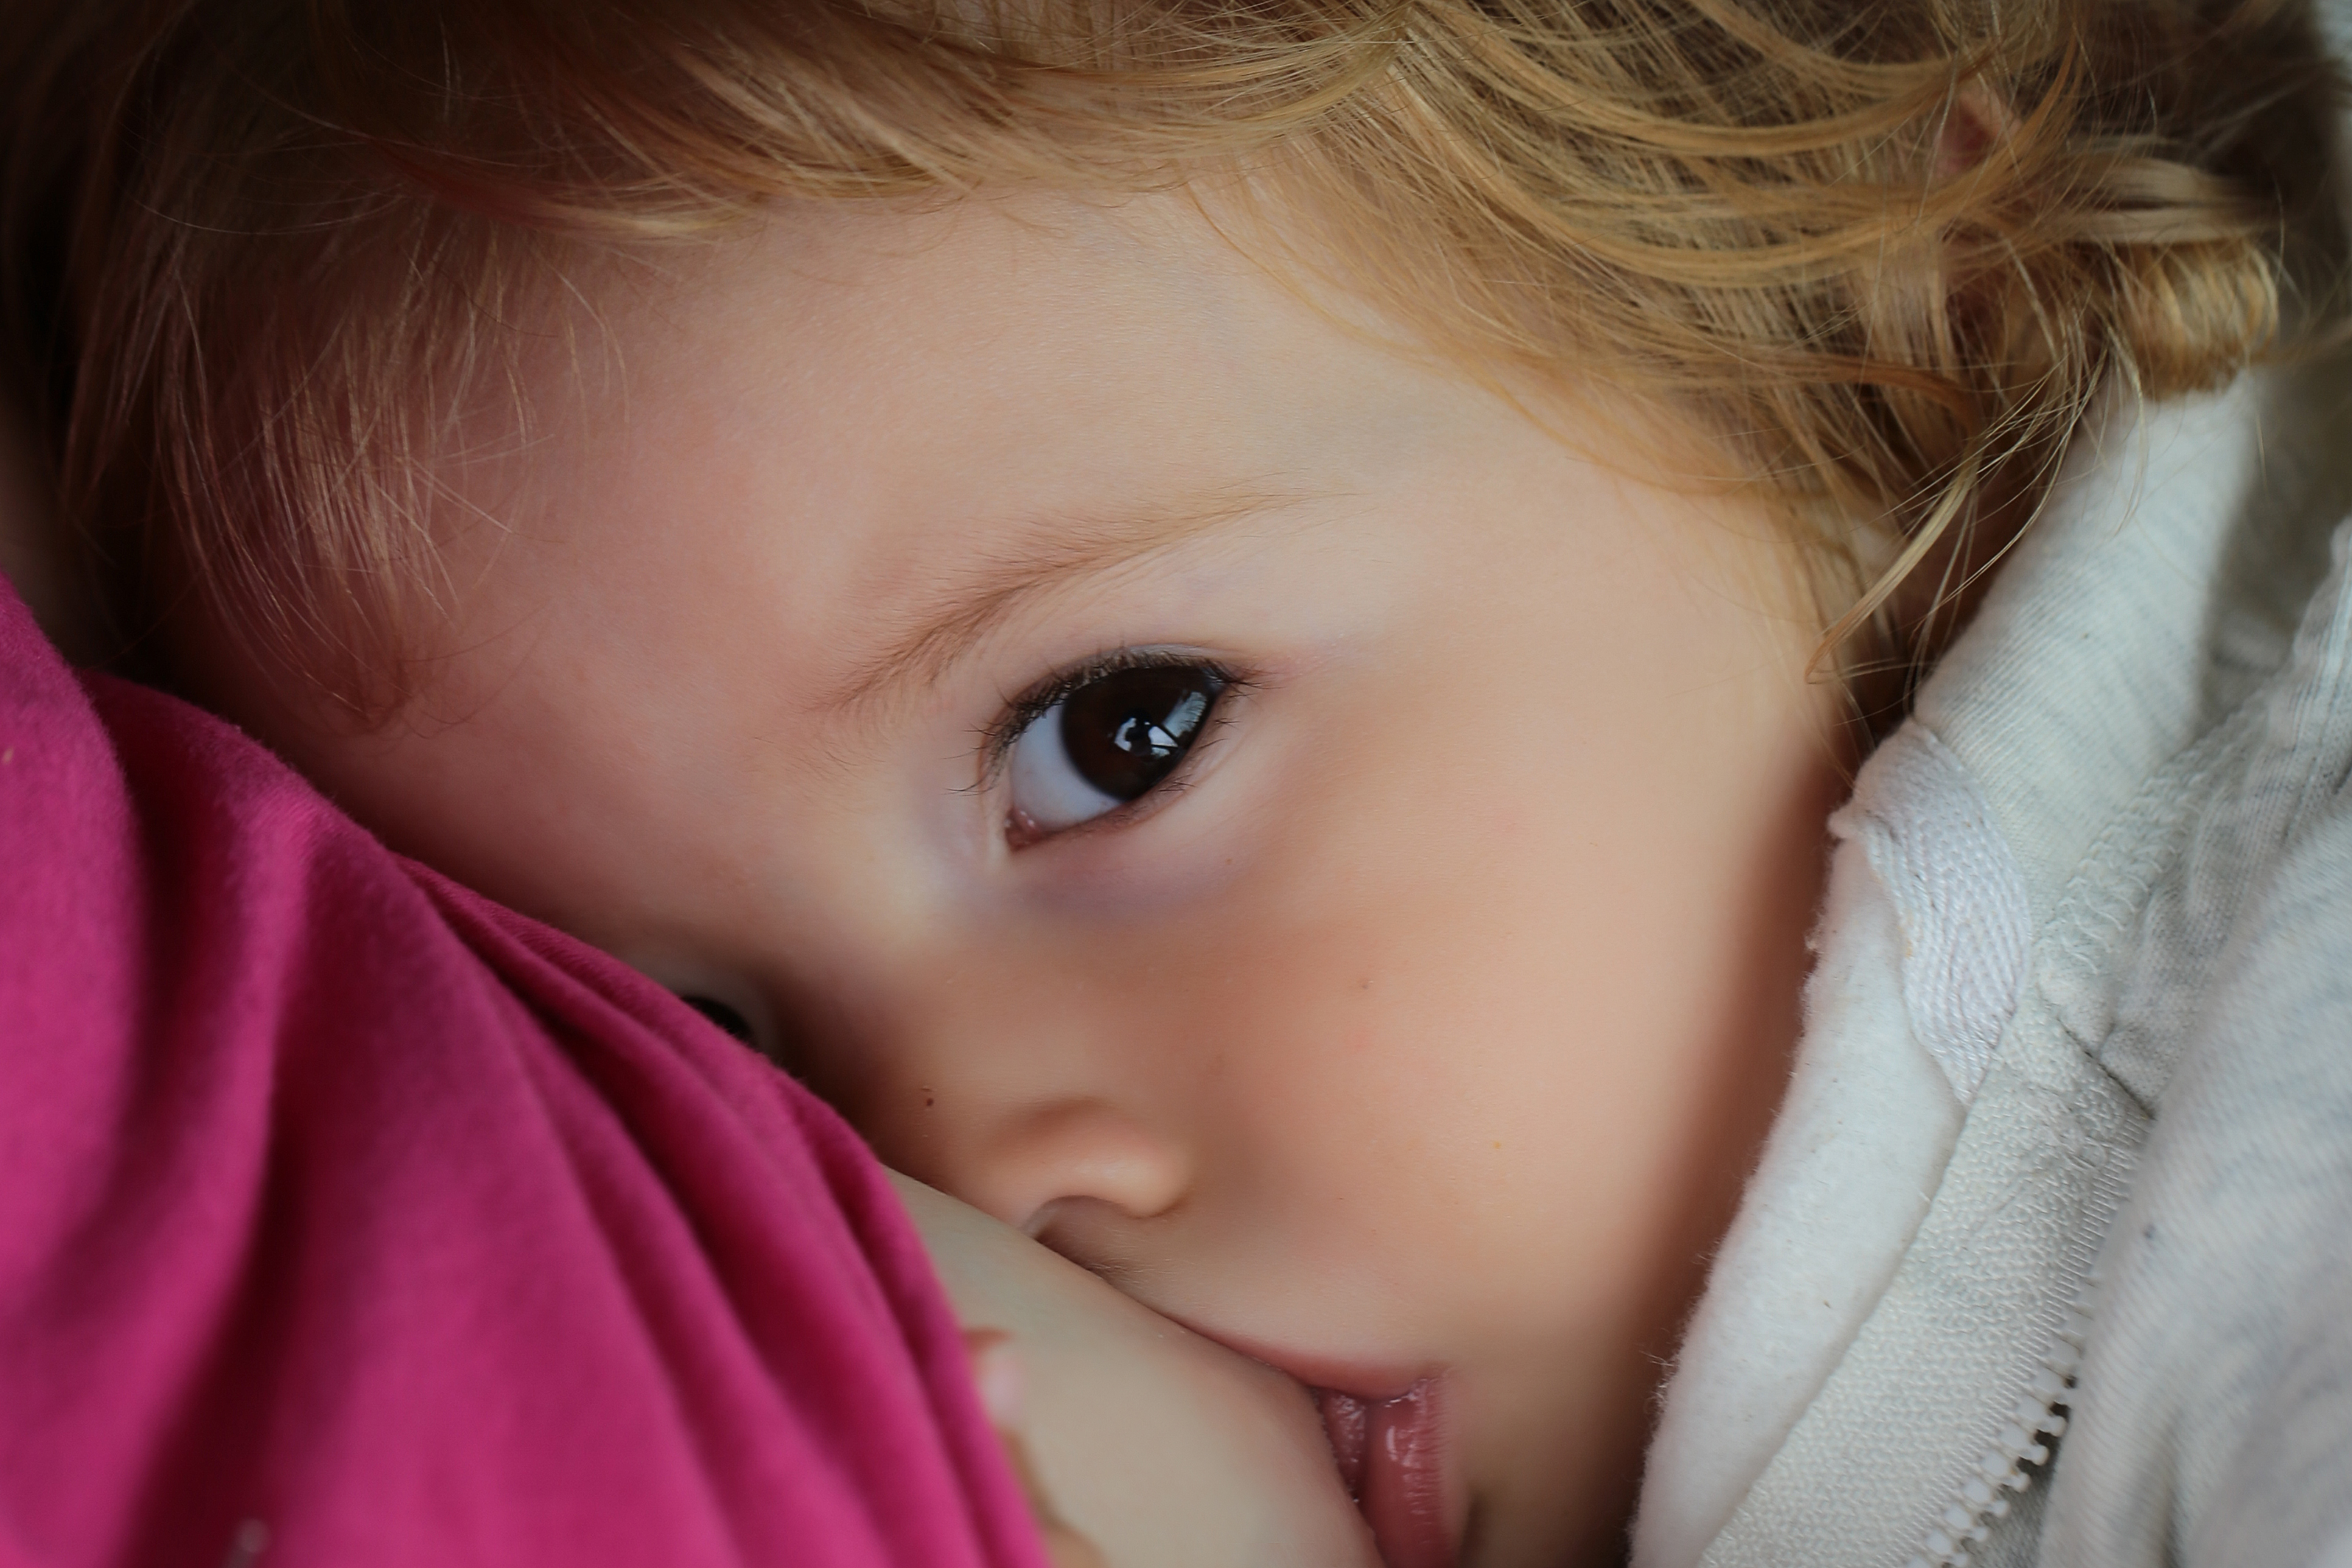 Baby Breast Lumps: Causes and When to See a Doctor - WebMD